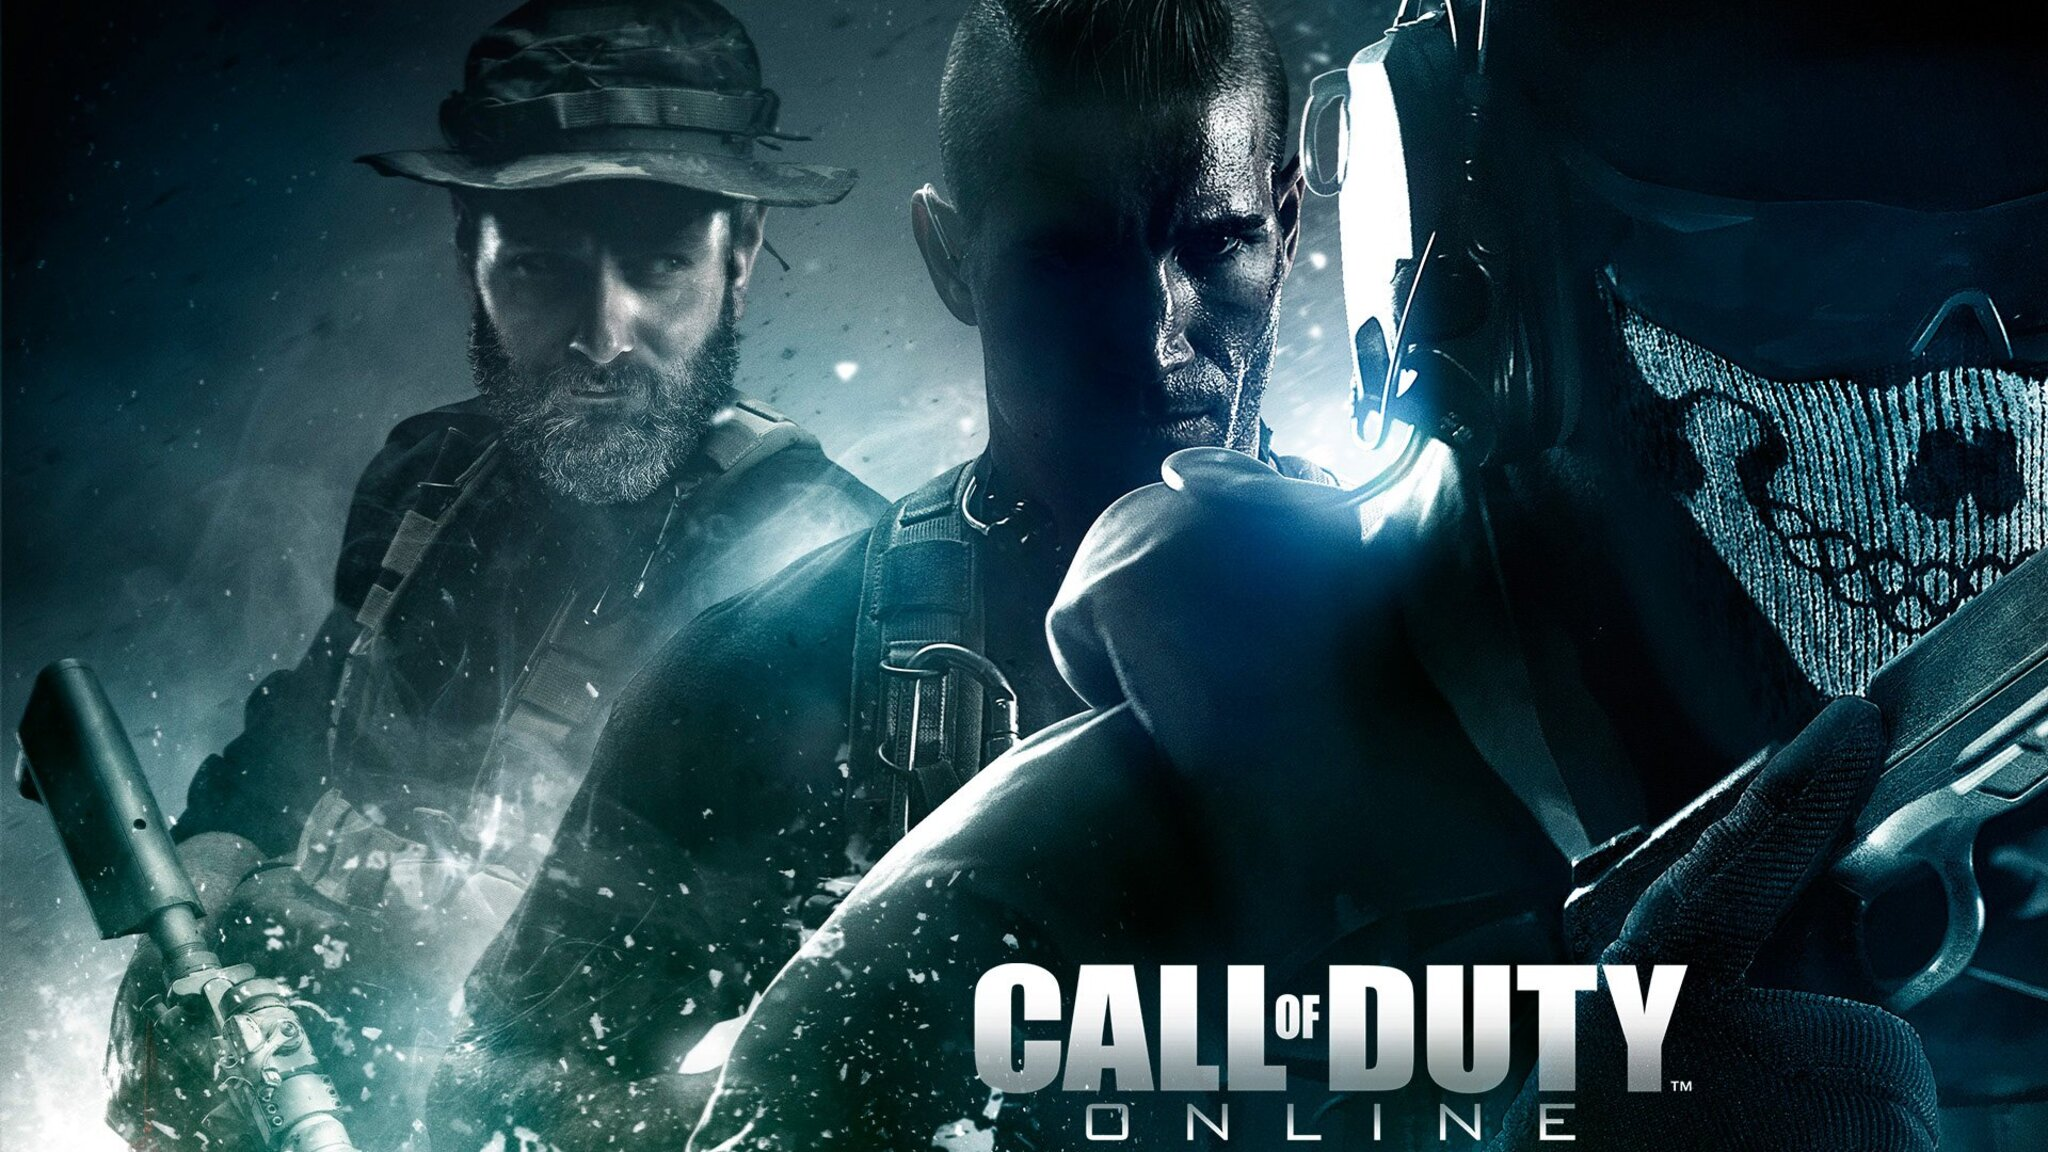 2048x1152 call of duty online game 2048x1152 resolution hd